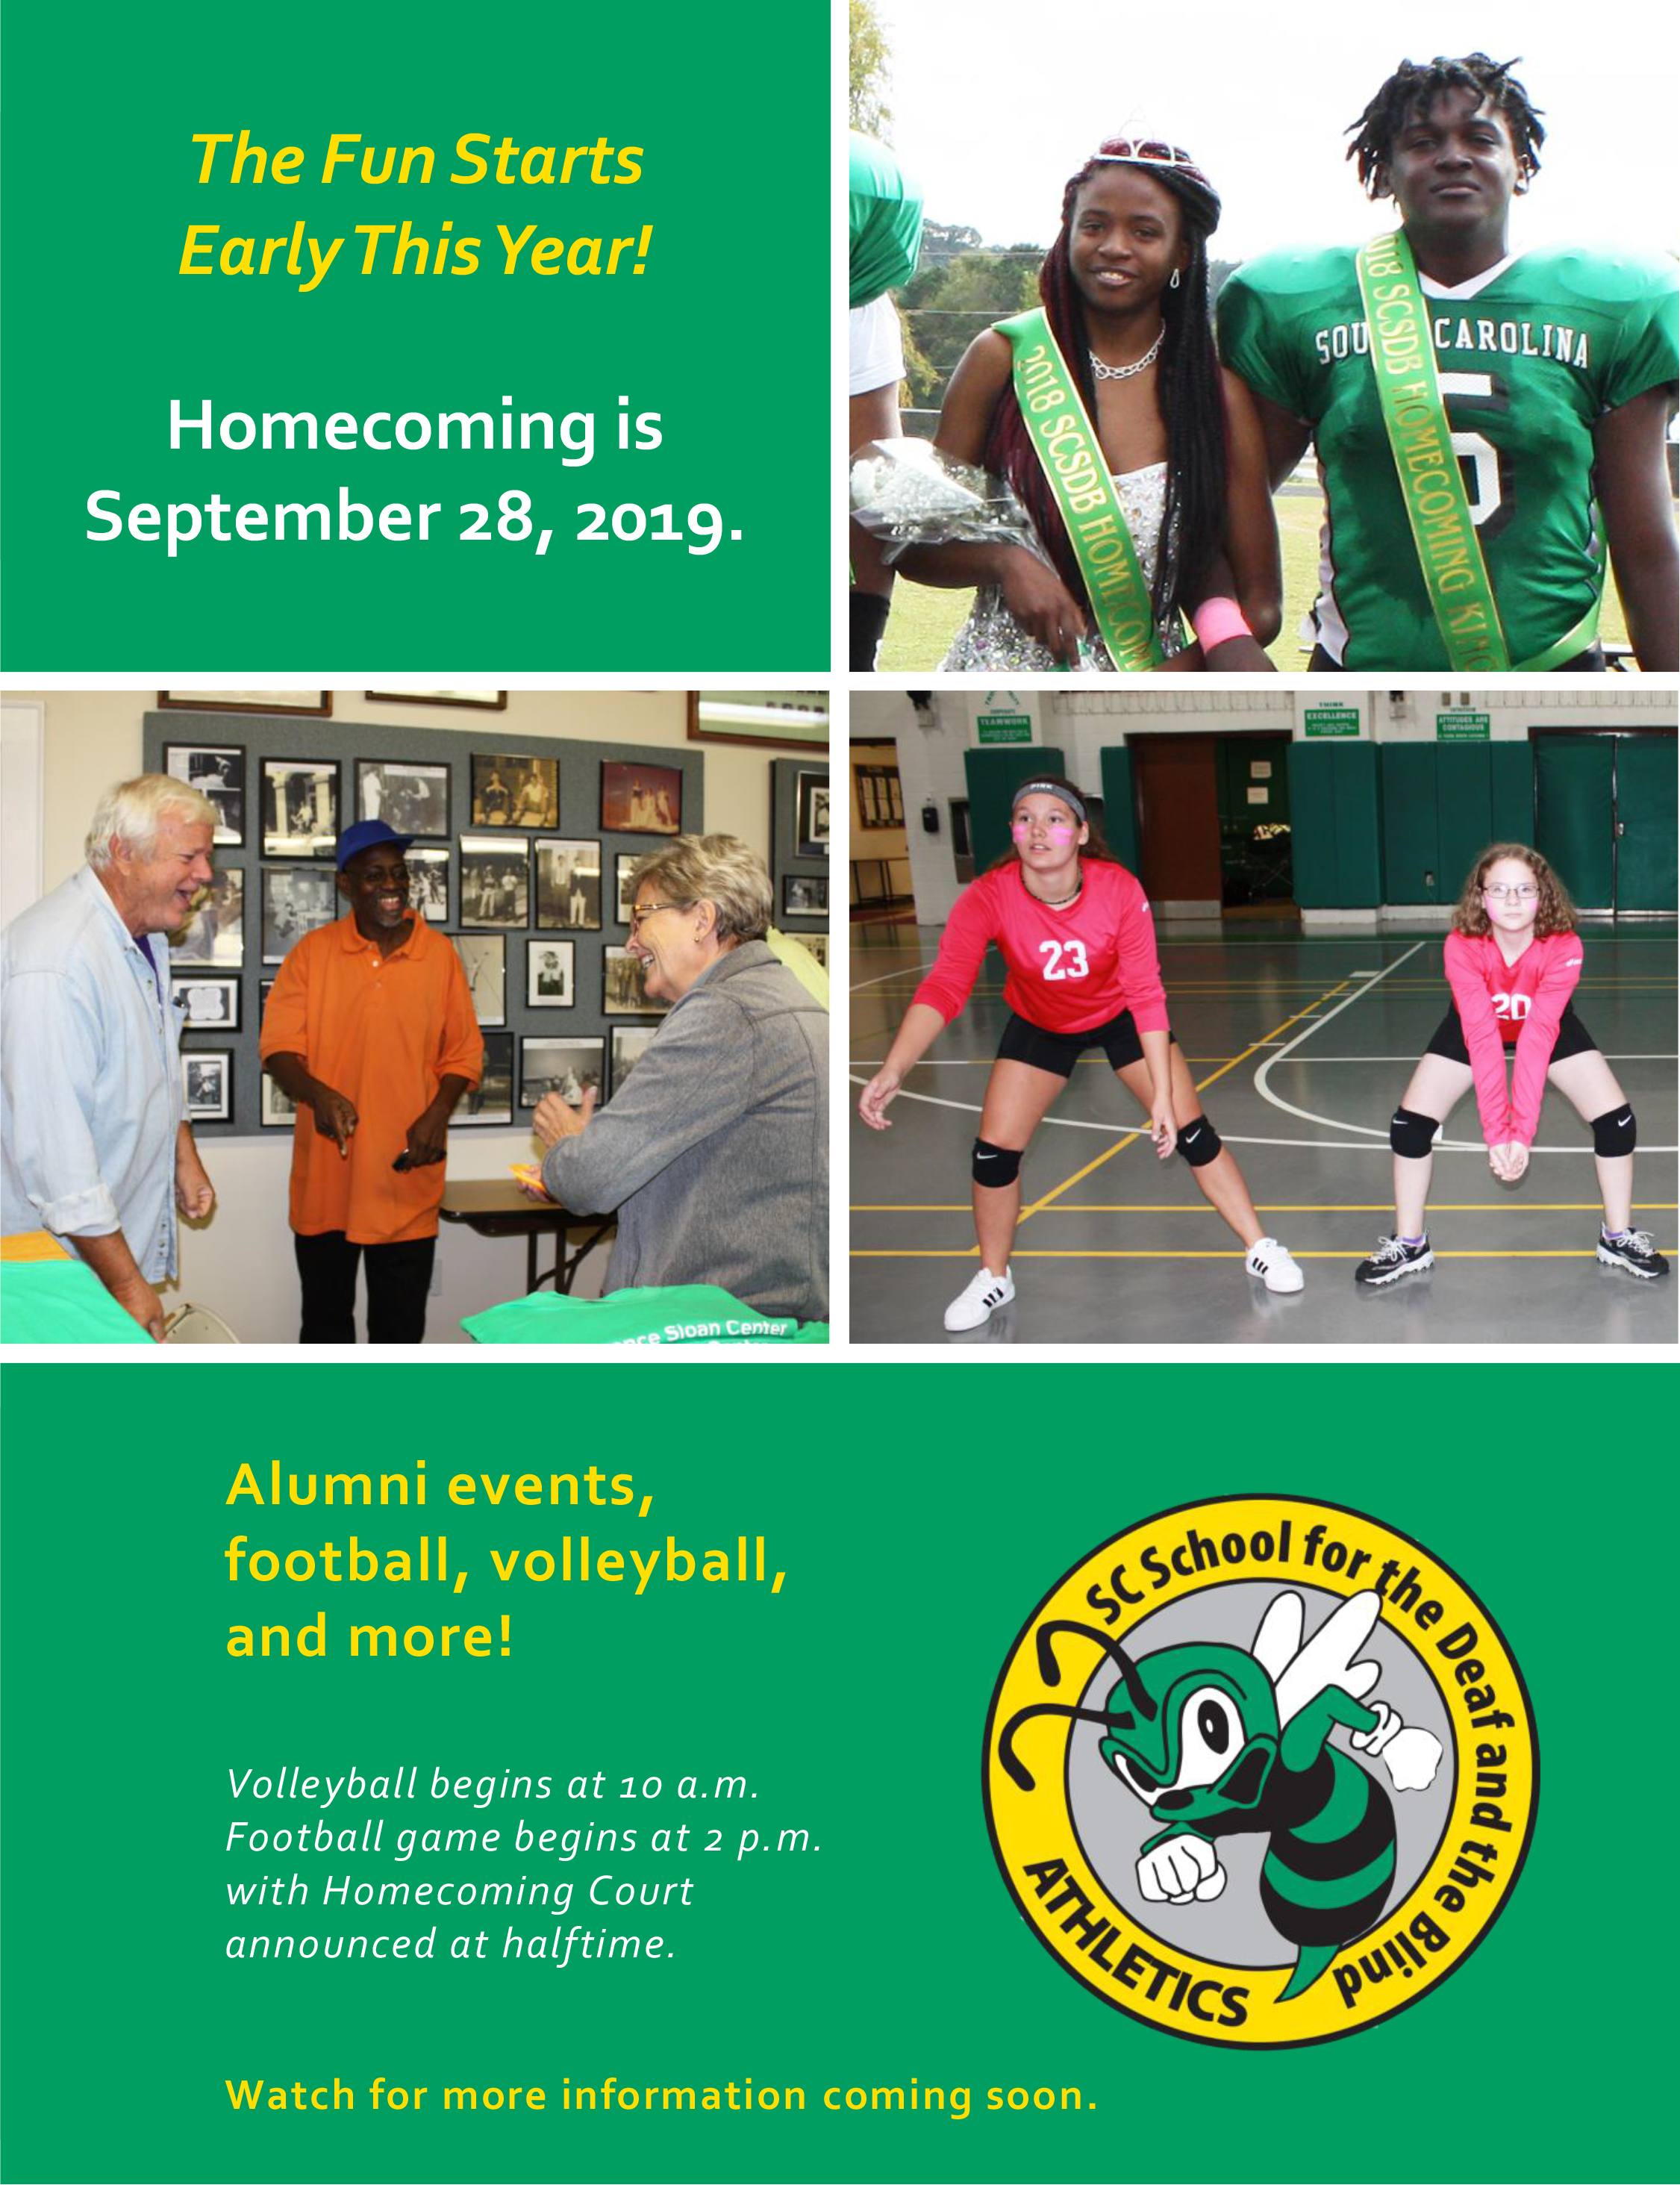 The Fun Starts Early This Year! Homecoming is September 28, 2019. Read more immediately below the flyer.